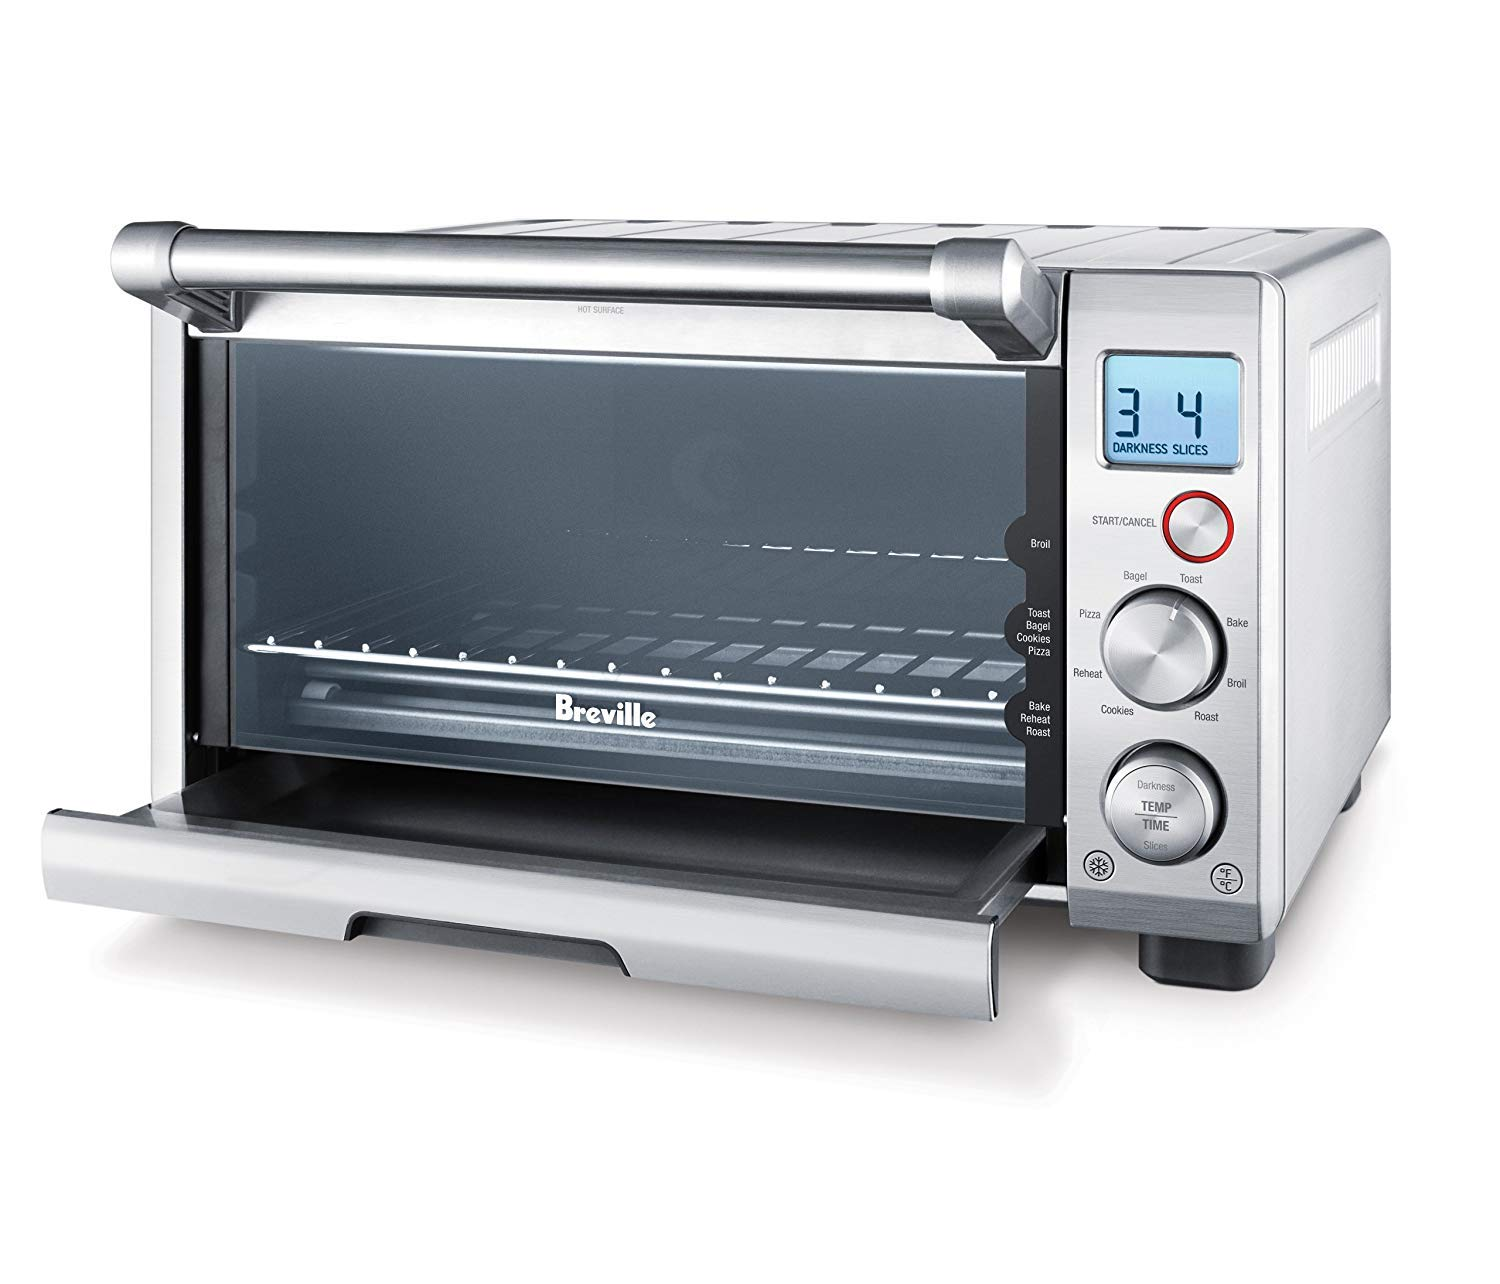 Breville the Compact Smart Oven 1800W Convection Toaster Oven - BOV650XL by Breville (Image #3)